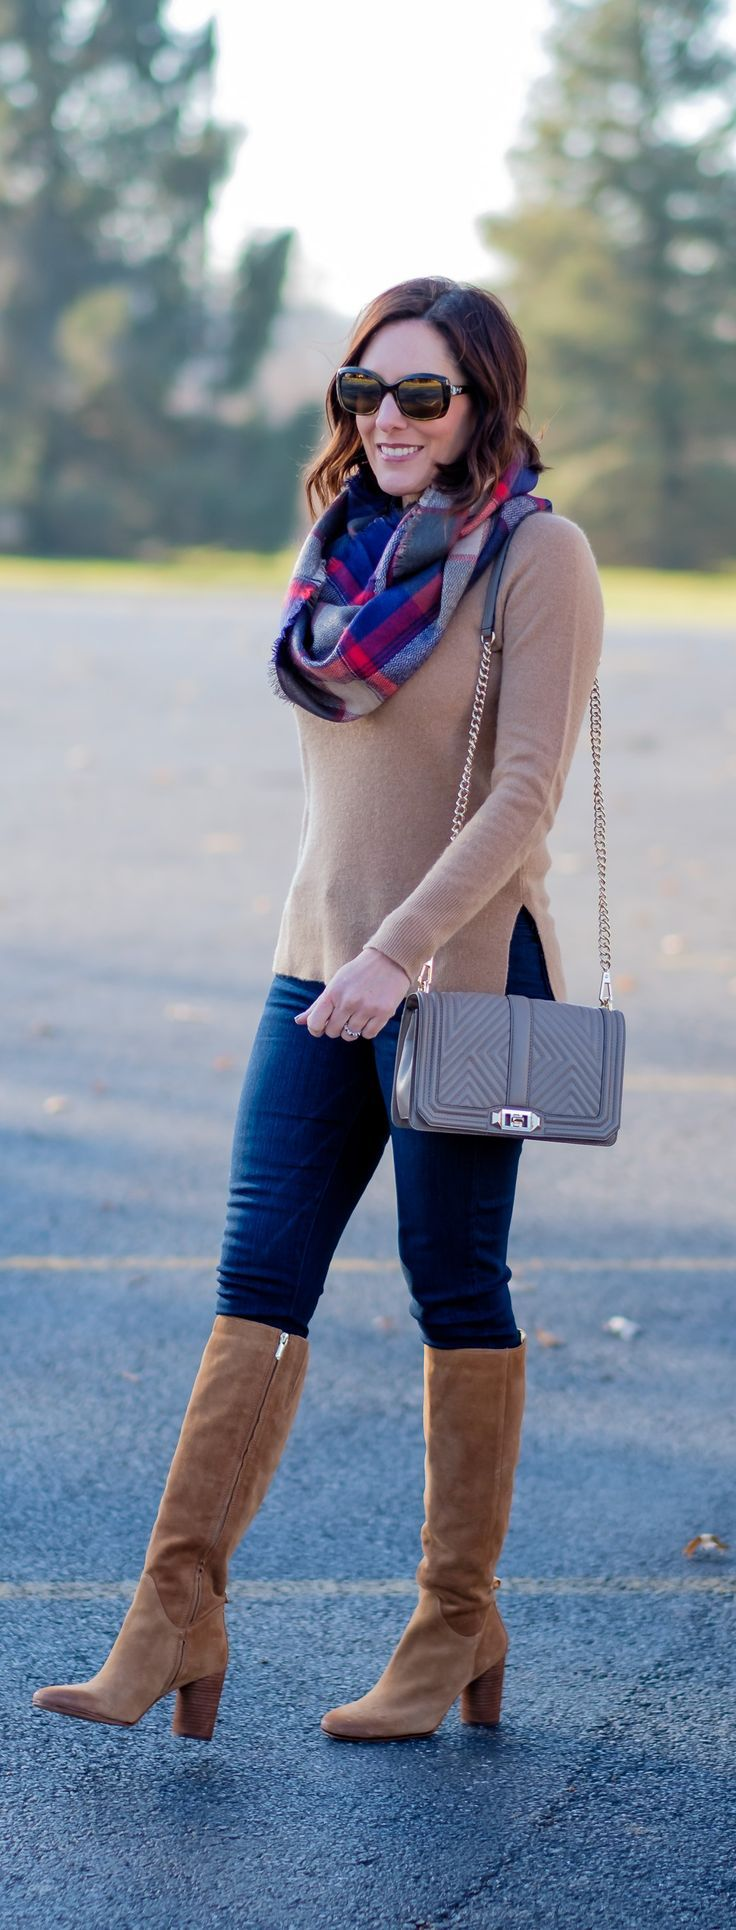 winter outfit inspo | camel cashmere sweater | paige verdugo crop jeans | rebecca minkoff geo quilted love crossbody mushroom | sam edelman camellia tall boots | plaid infinity scarf | fashion over 40 | winter style | philadelphia fashion blog